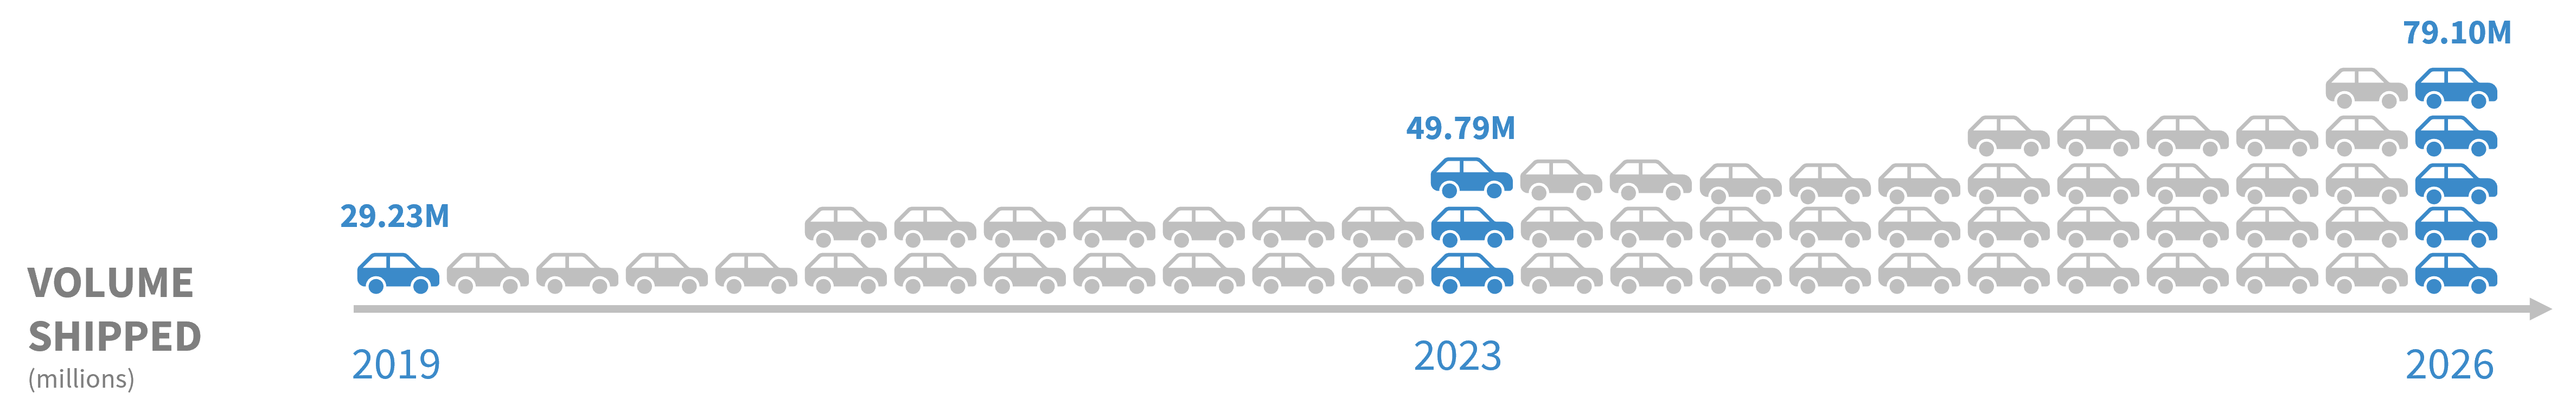 Connected Vehicle Market Volume